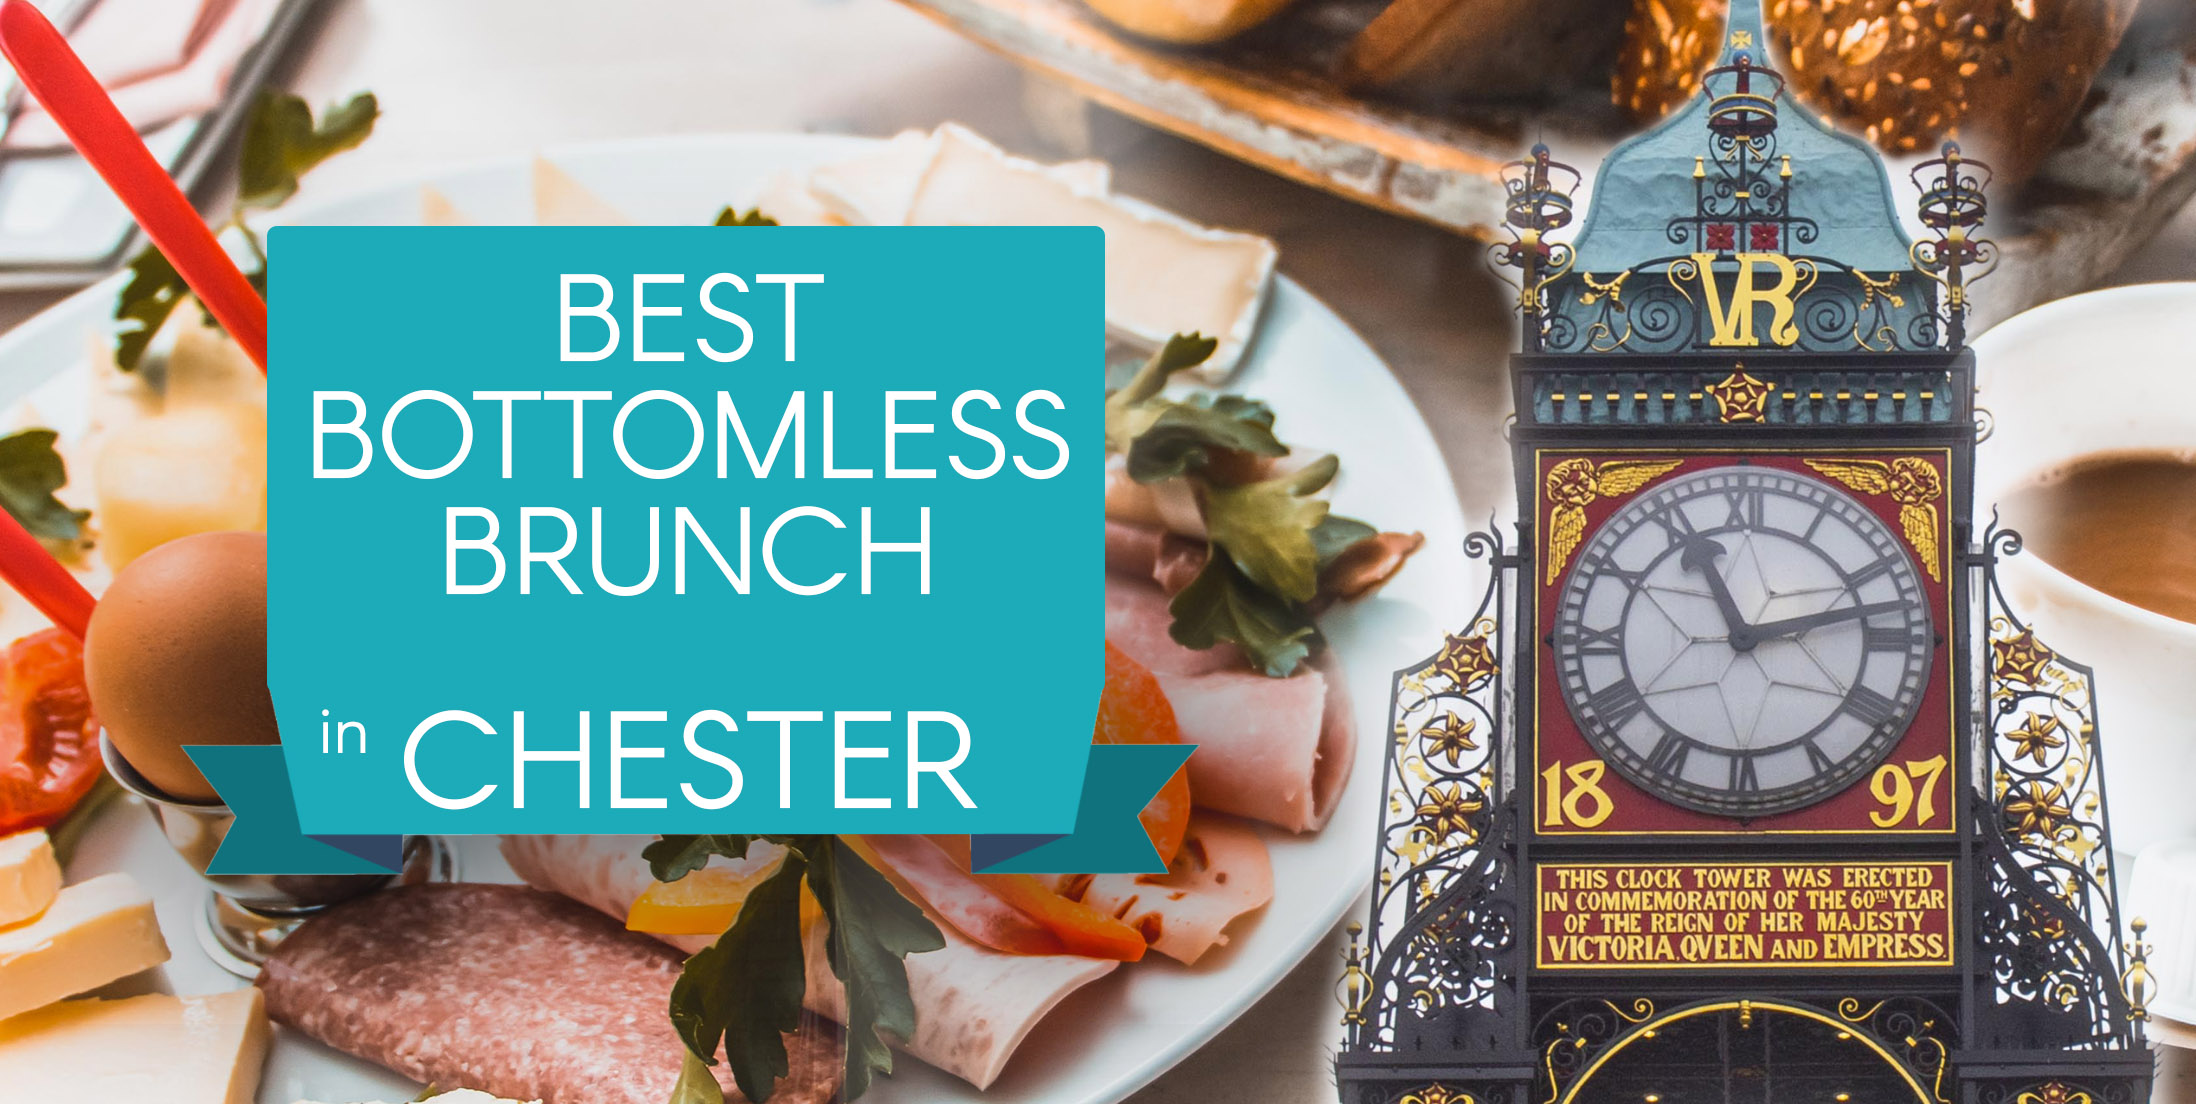 Best Bottomless Brunch in Chester